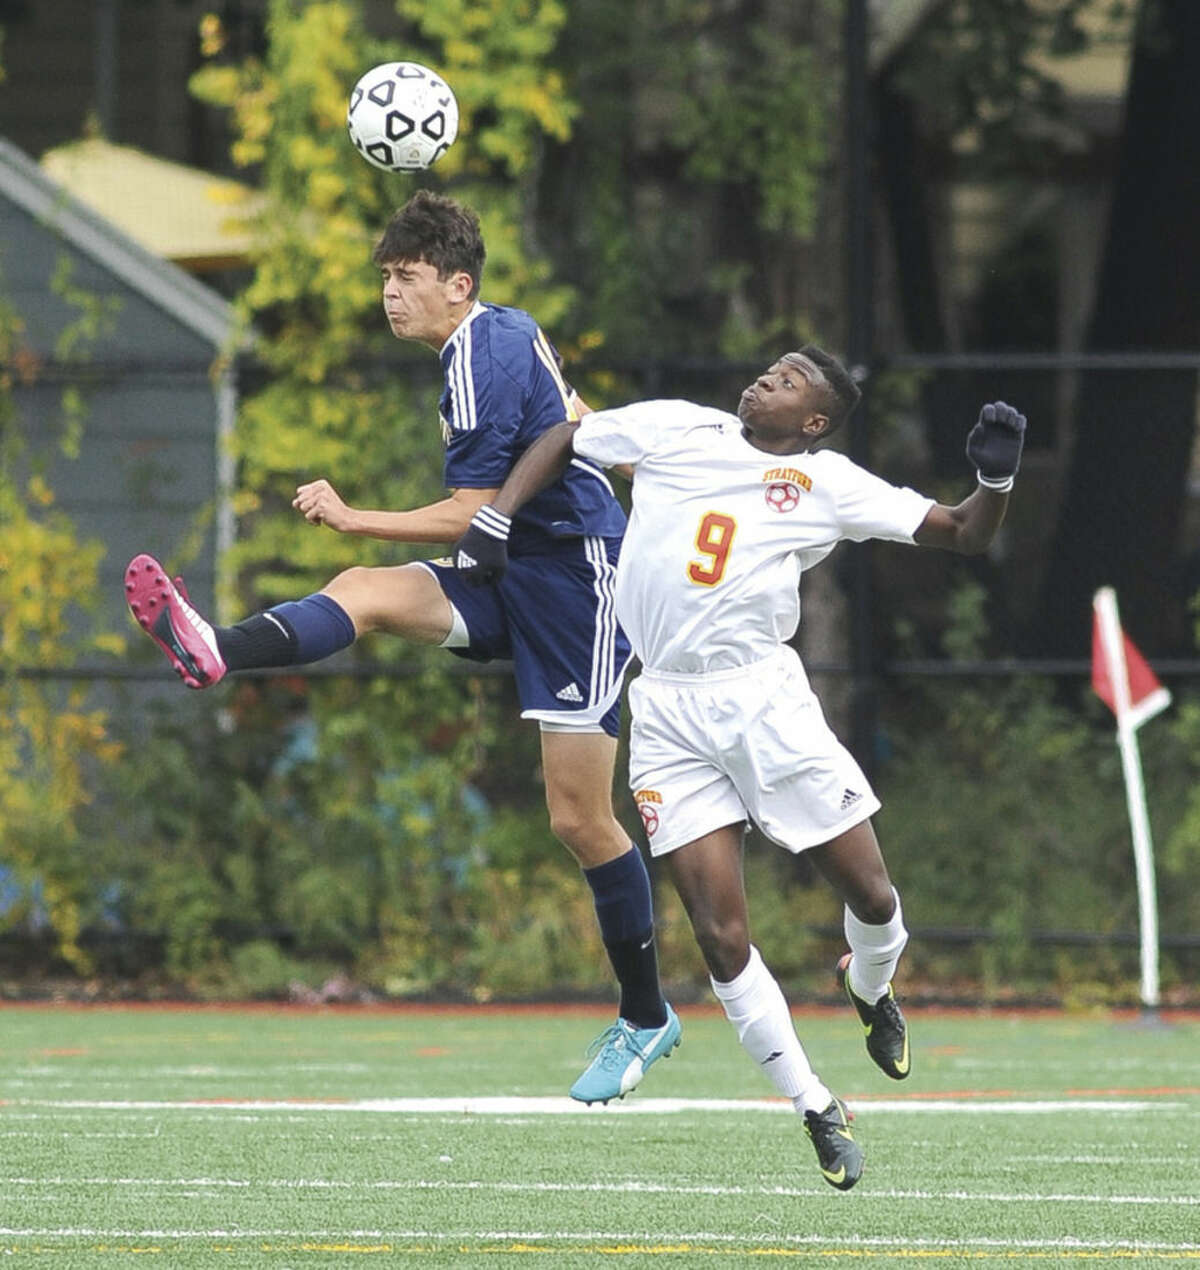 Hour photo/John Nash Weston's Frank Lugossy, left, heads the ball before it gets to Stratford's Anthony Afiyei during Saturday's boys soccer game at Penders Field in Stratford. Weston won 3-1.